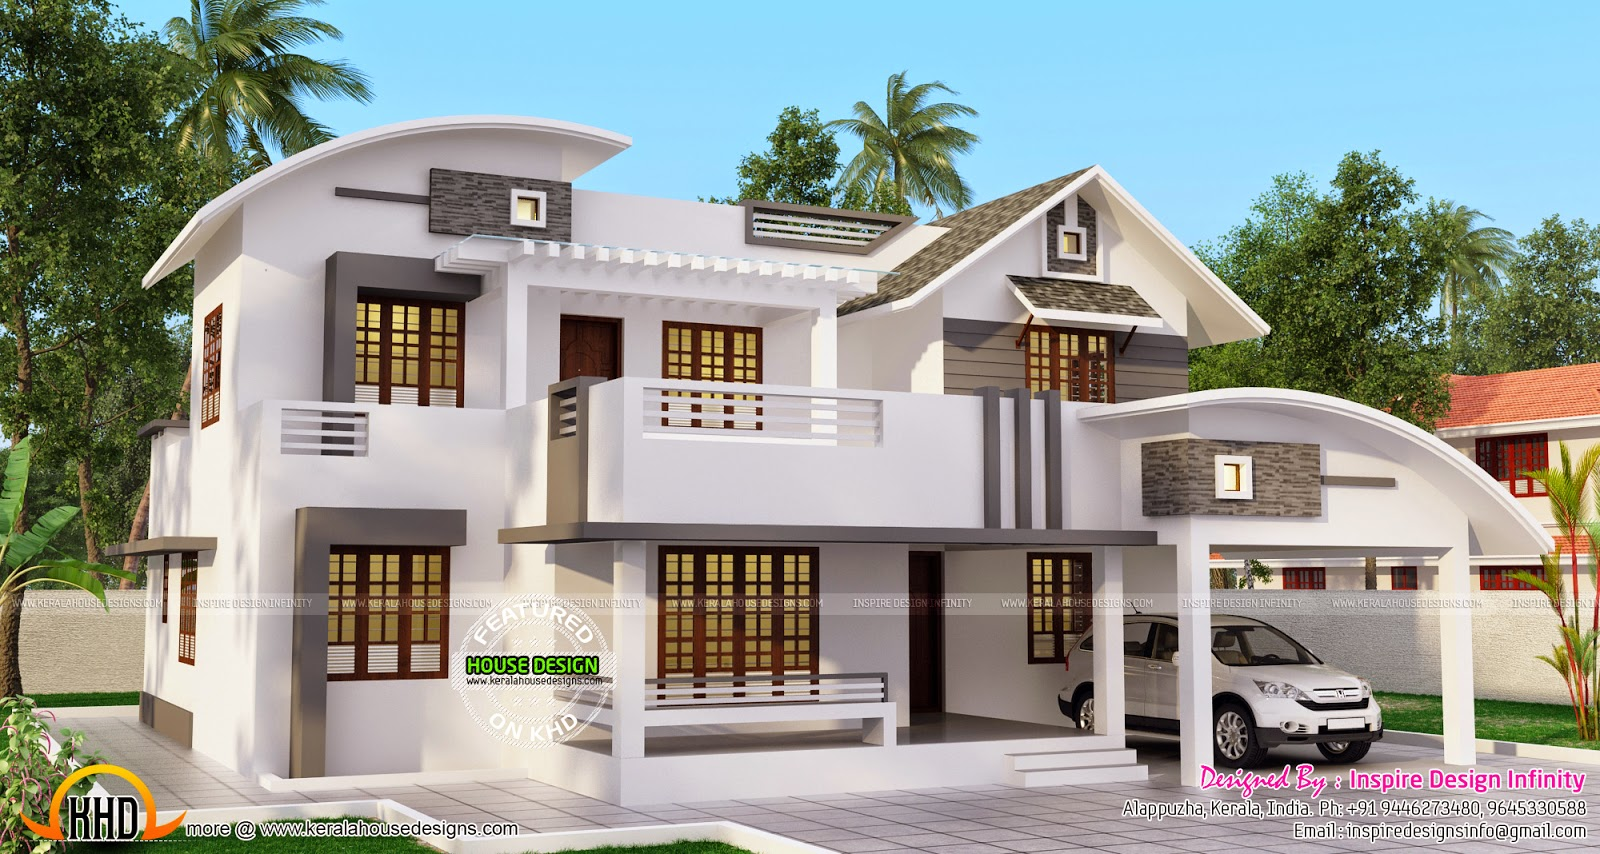 Double storied modern home kerala home design and floor for Kerala home designs photos in double floor